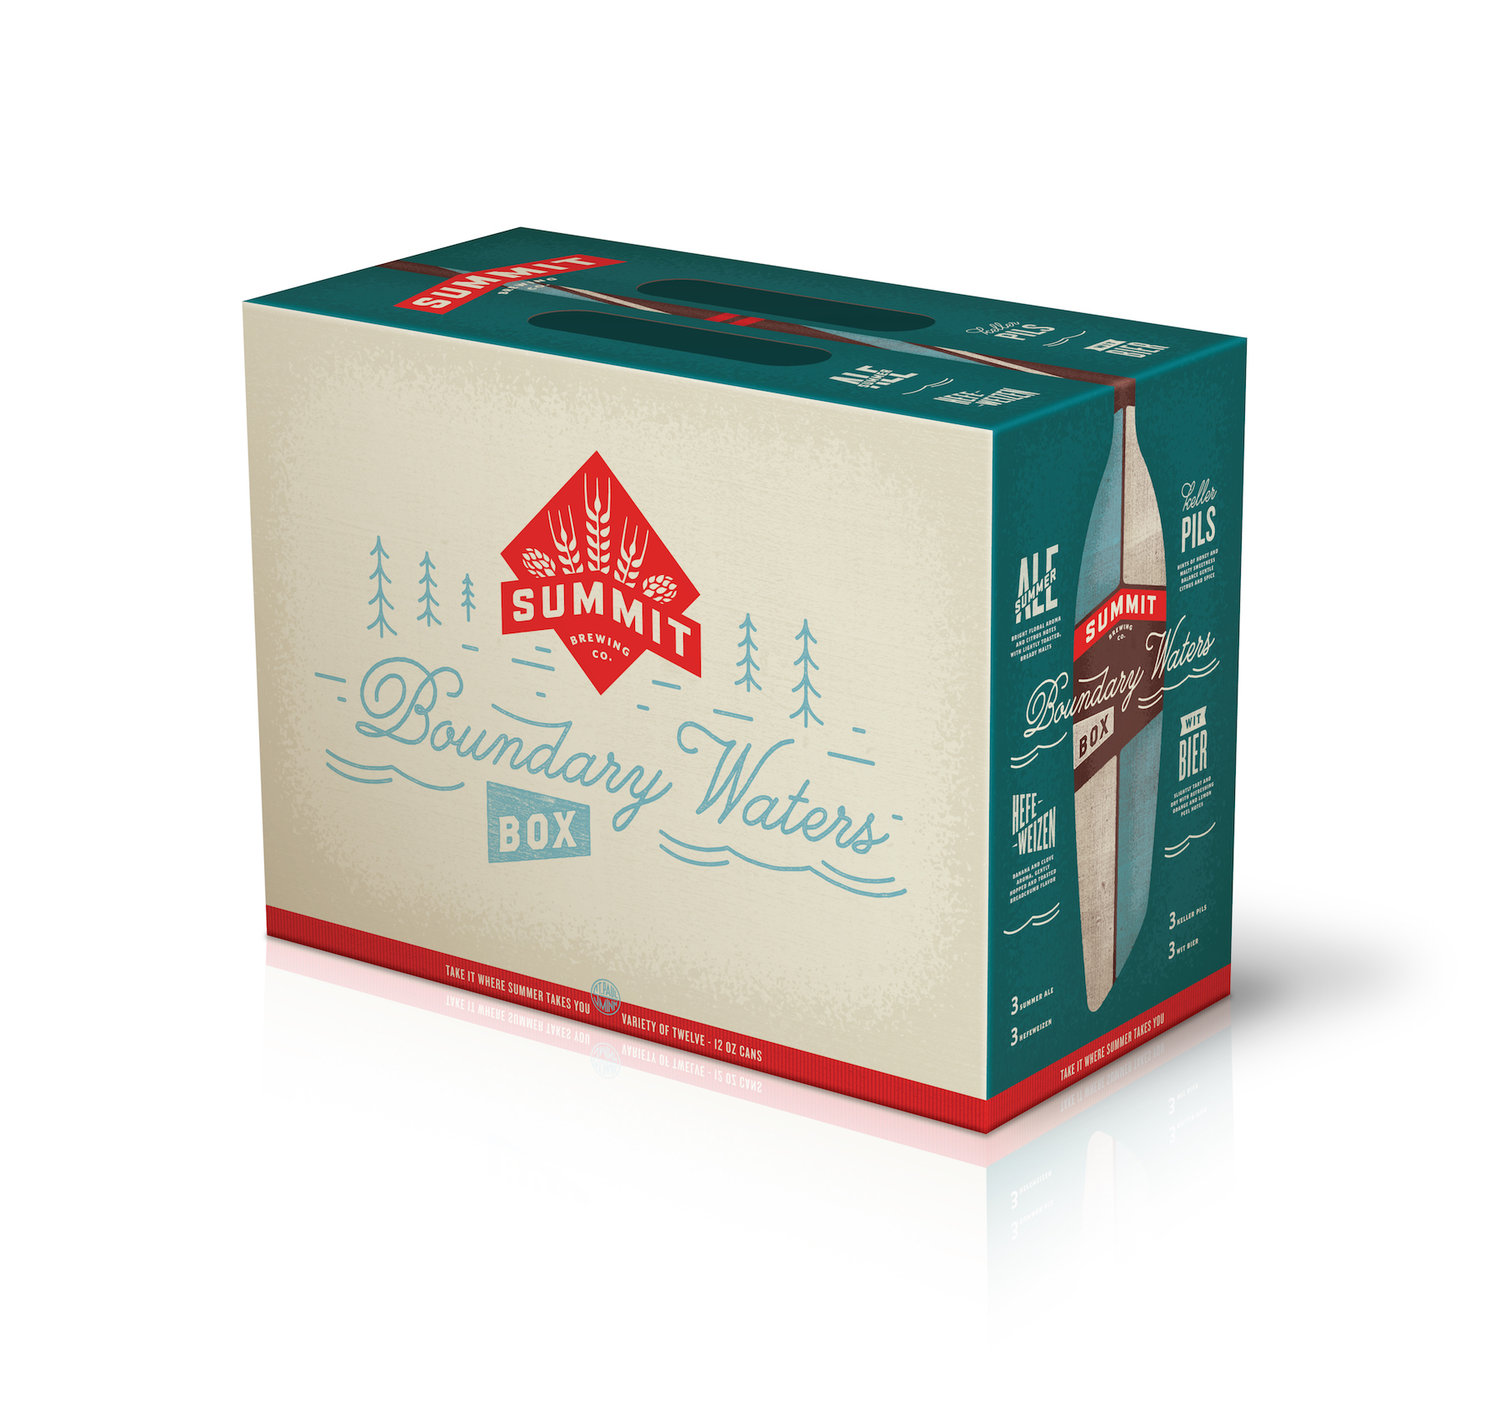 Get Ready for Summer with Summit Brewing Co.'s Boundary Waters — The Dieline | Packaging & Branding Design & Innovation News